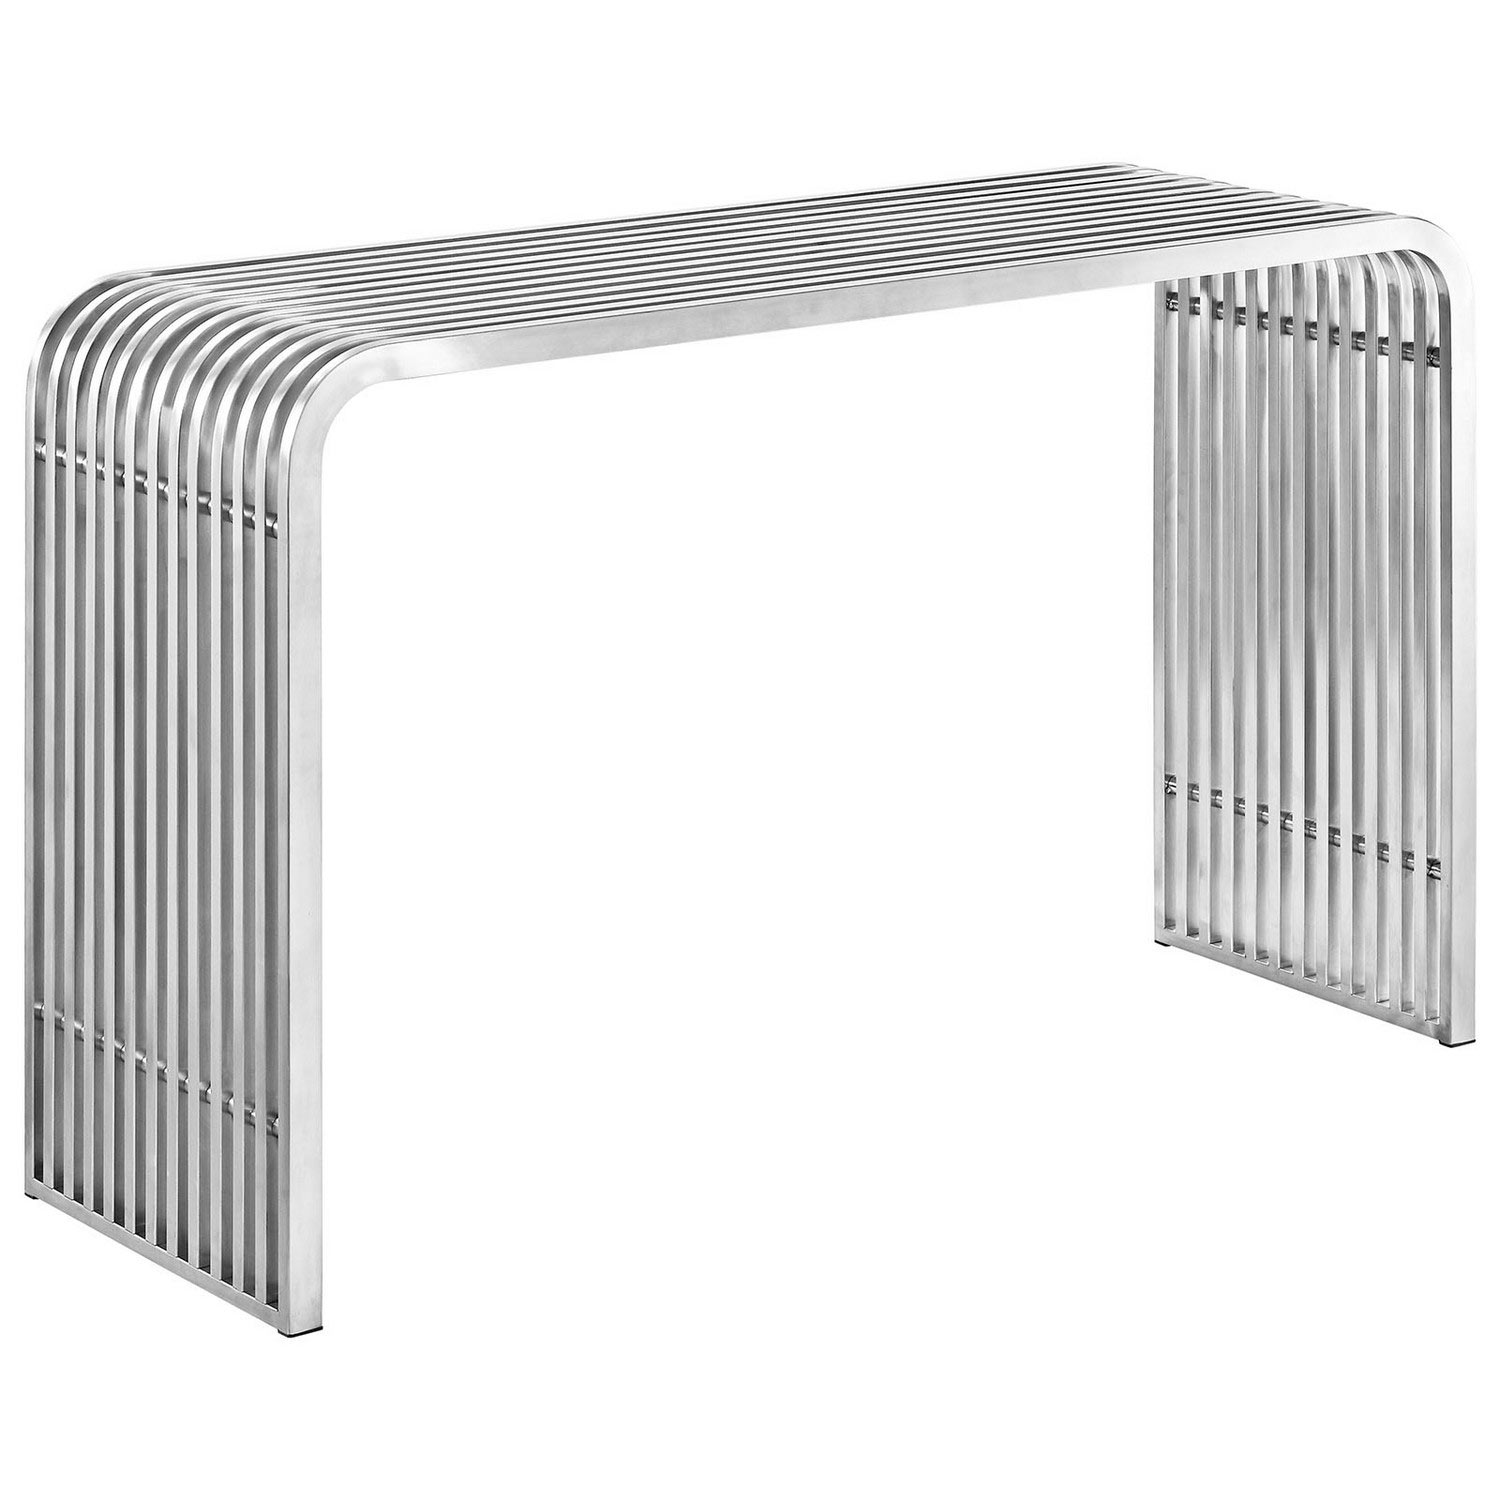 Modway Pipe Stainless Steel Console Table - Silver